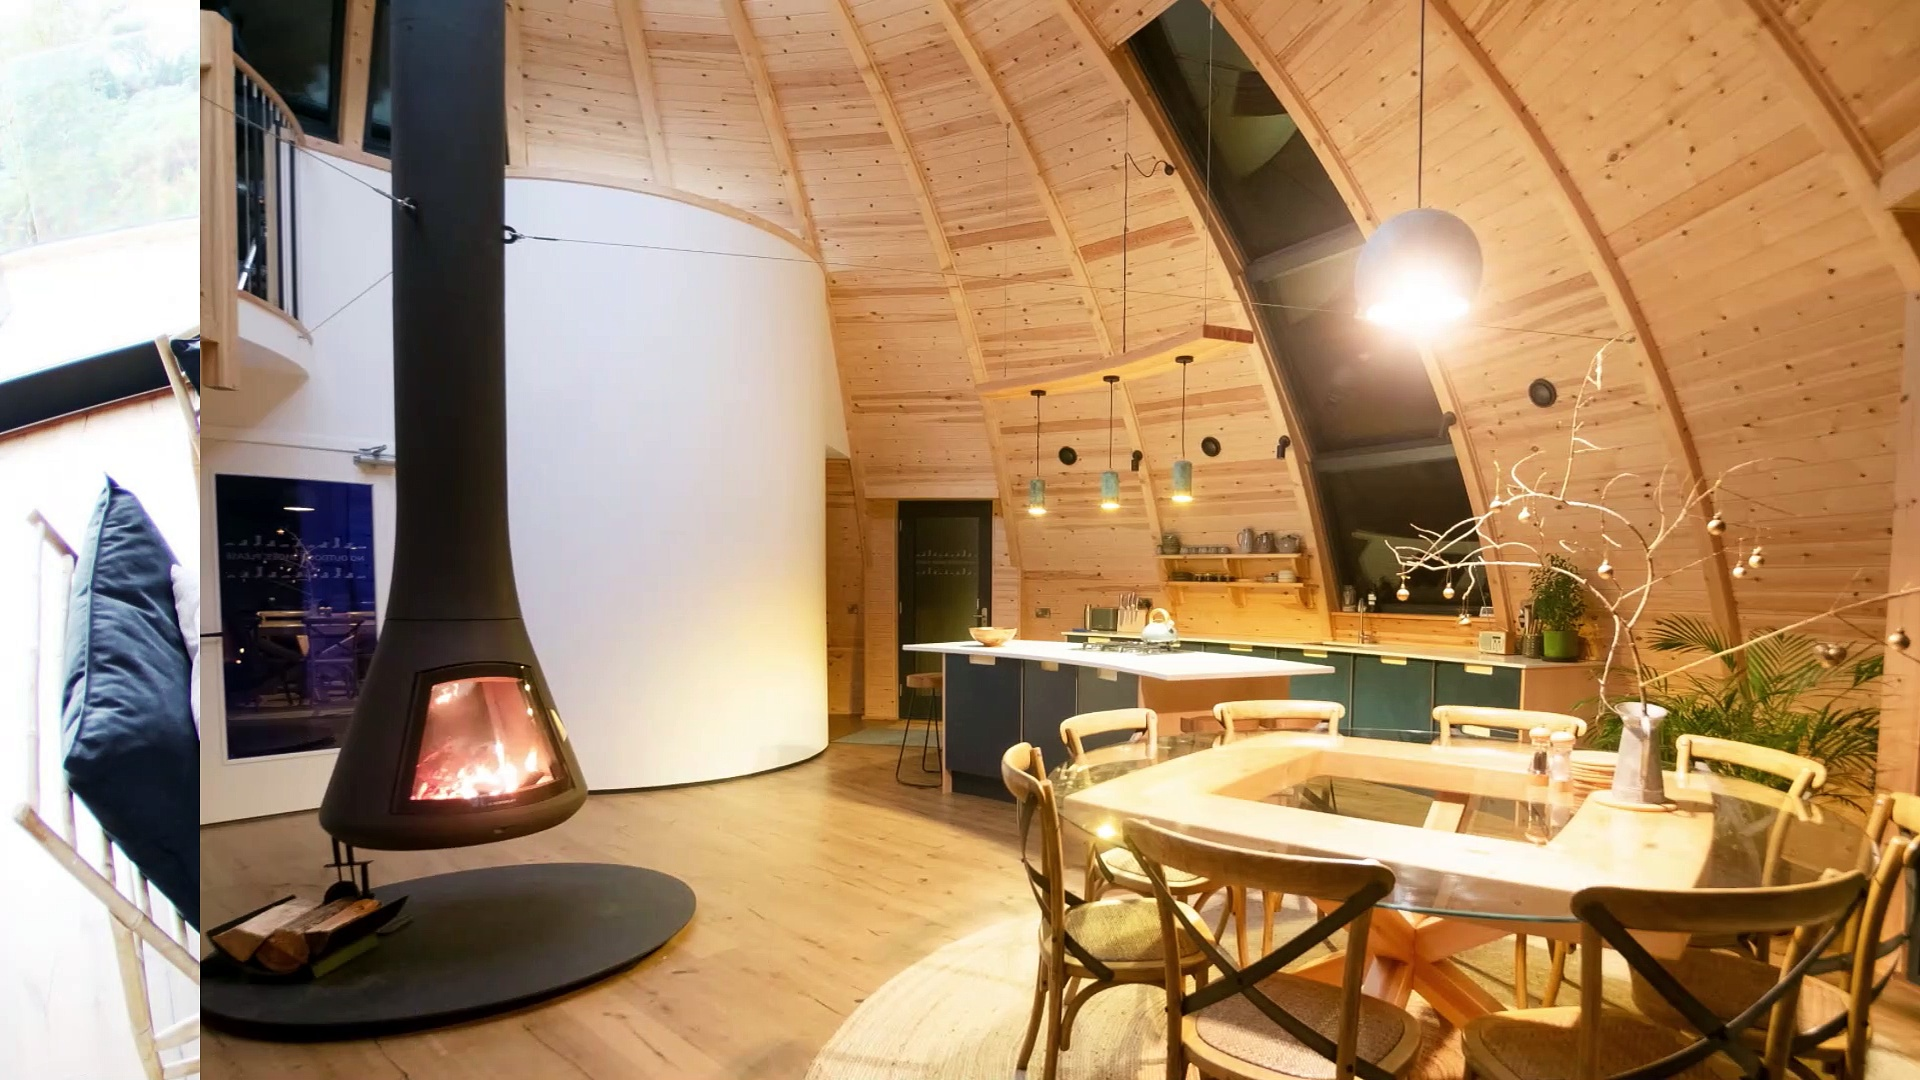 Eco Bothy with log burner and hot tub